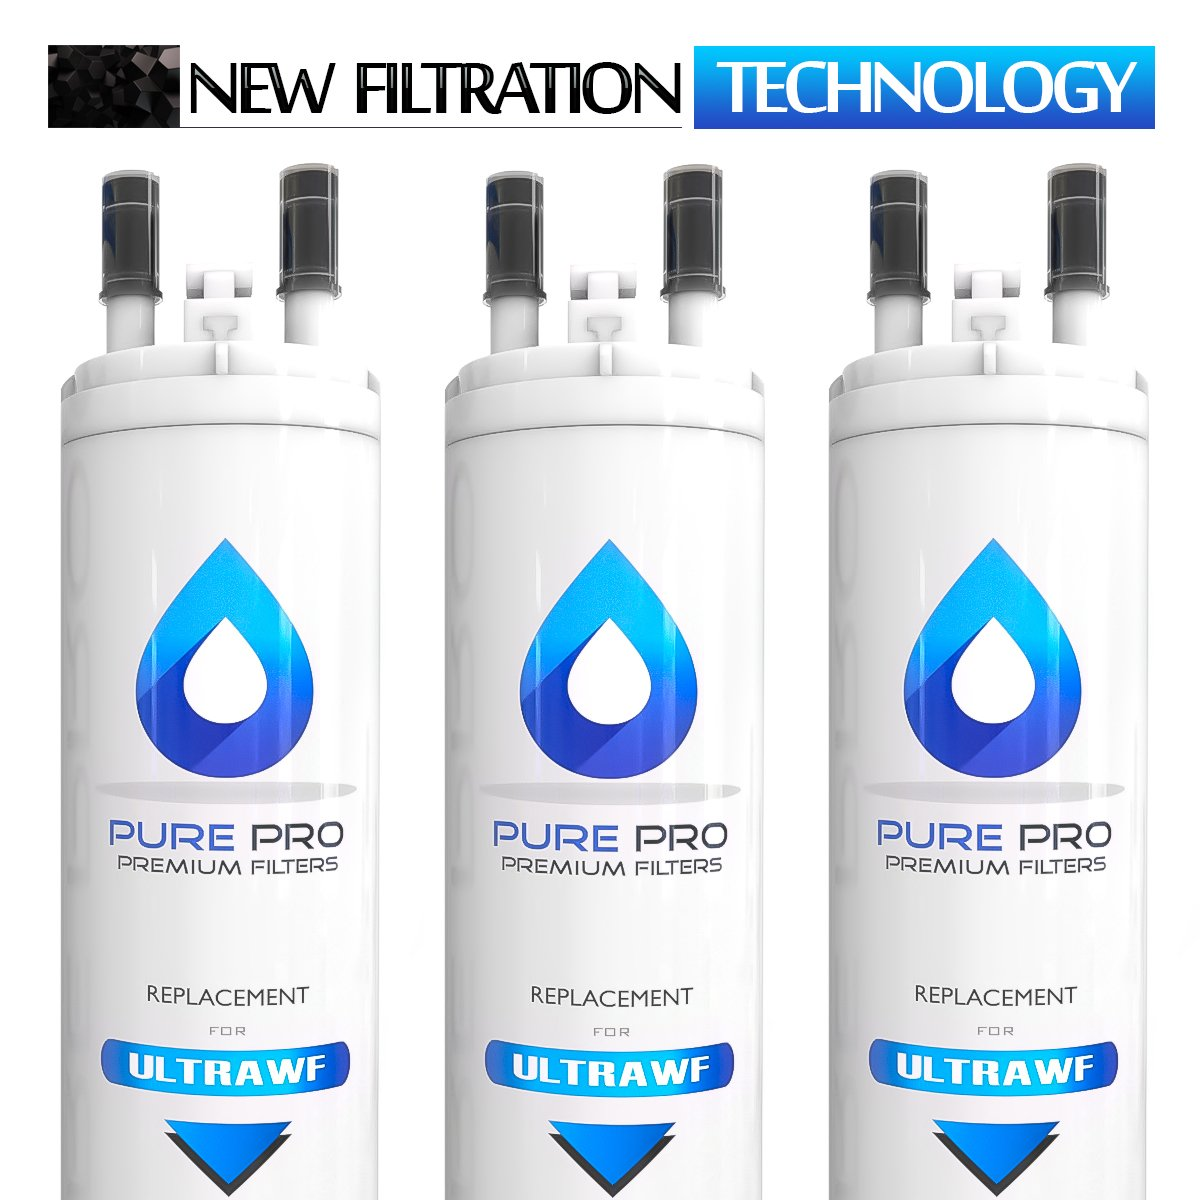 Pure Pro U|LTRAWF Compatible Refrigerator Water Filter (3-pack)